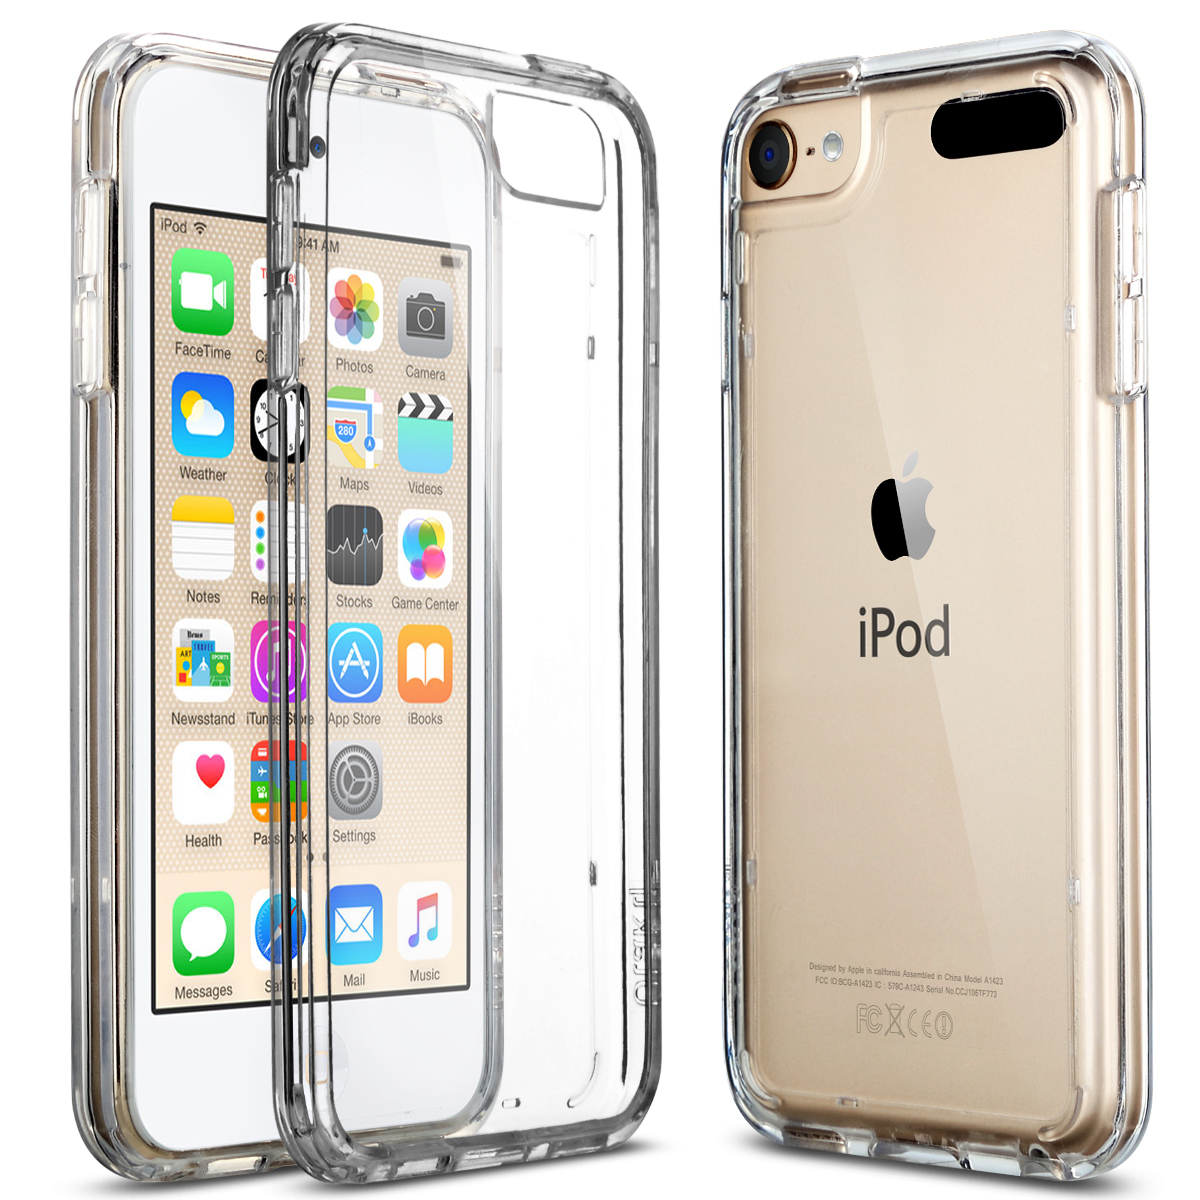 ULAK Soft TPU Bumper PC Back Hybrid Case for iPod Touch 6/iPod Touch 5 - Retail Packaging - Clear Slim (Clear)